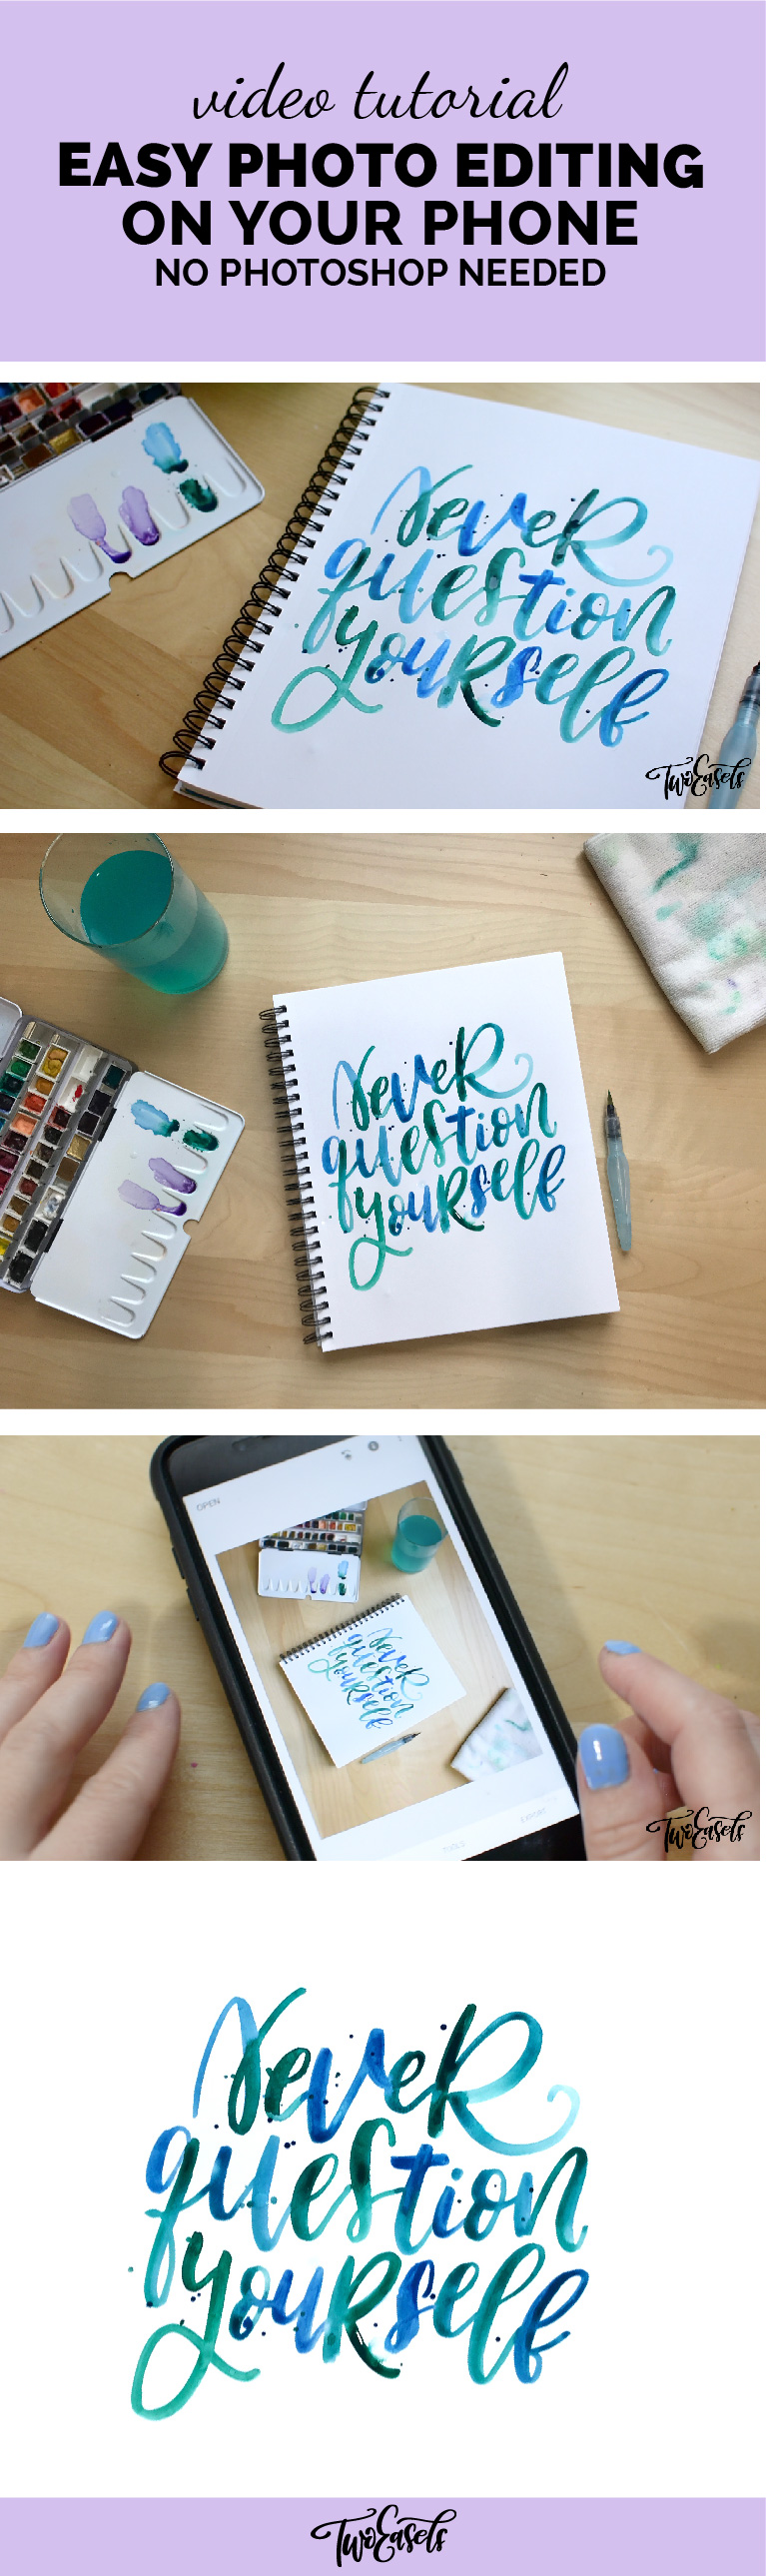 Learn how edit photos on your phone or iPad, no Photoshop needed. Perfect for those Instagram posts. Get rid of background. Lettering, art, or other crafts.